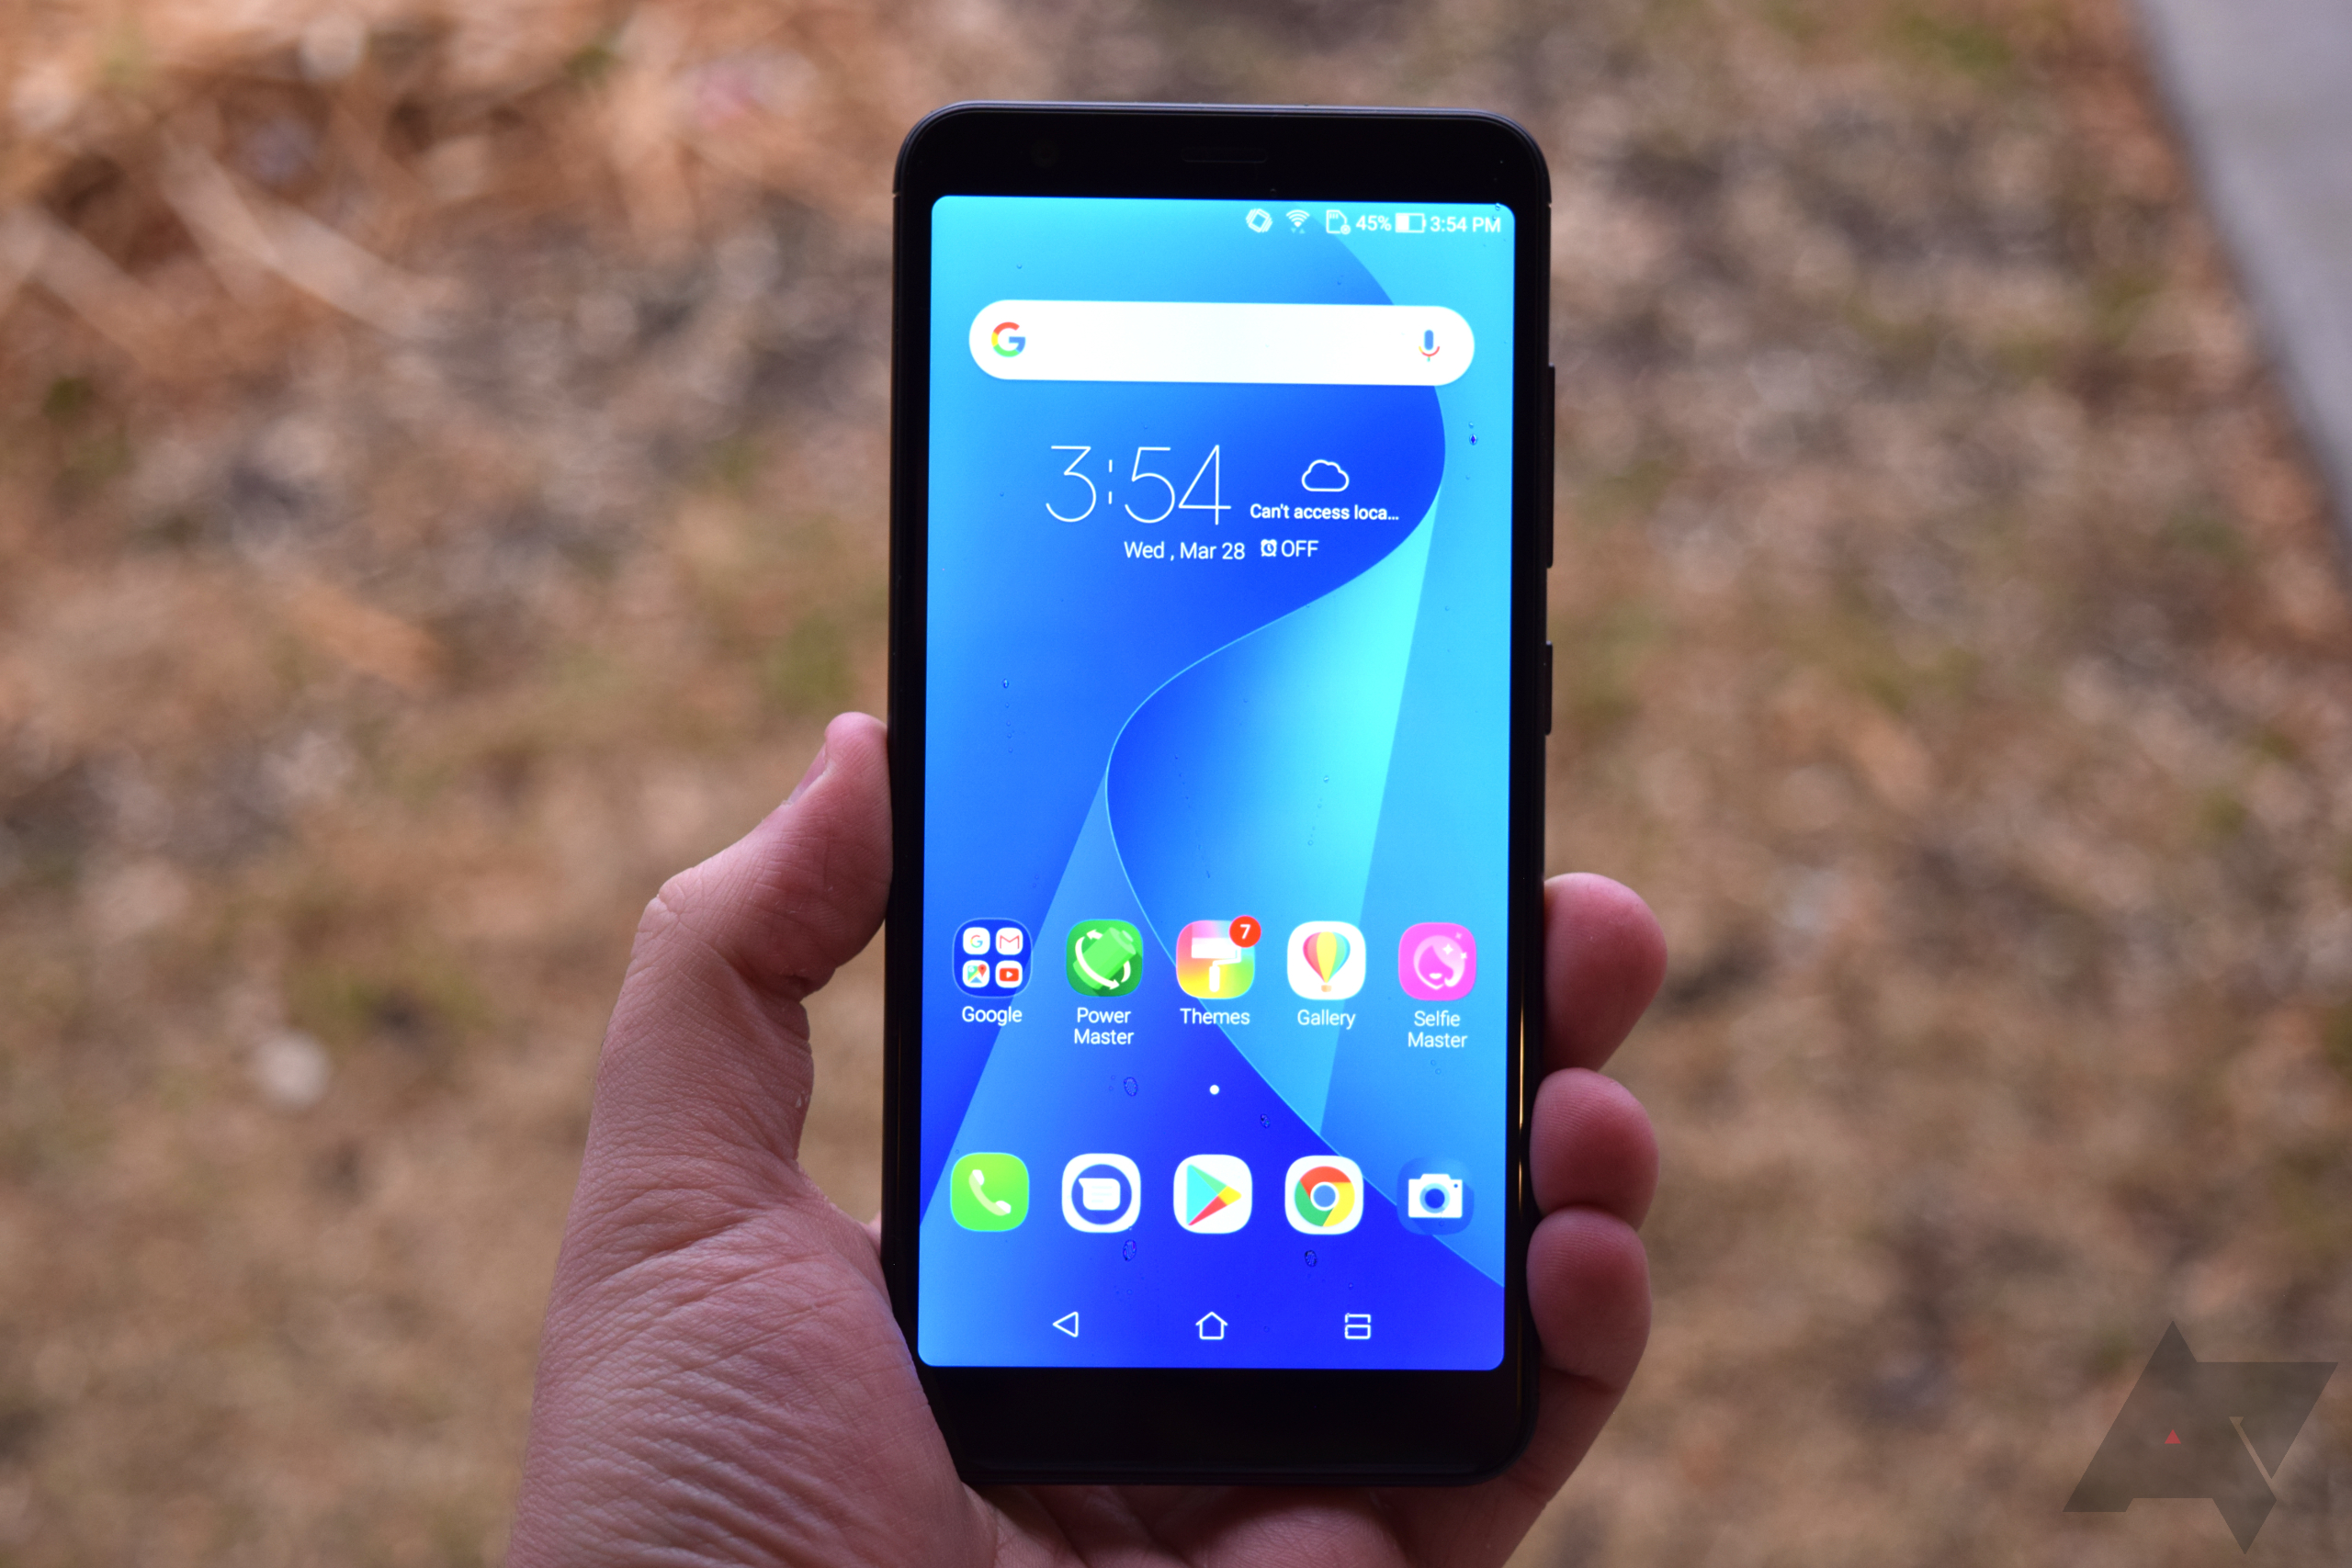 The Max Plus M1 looks and feels quite similar to the Zenfone 4 Max The body is mostly metal with plastic pieces at the top and bottom of the phone